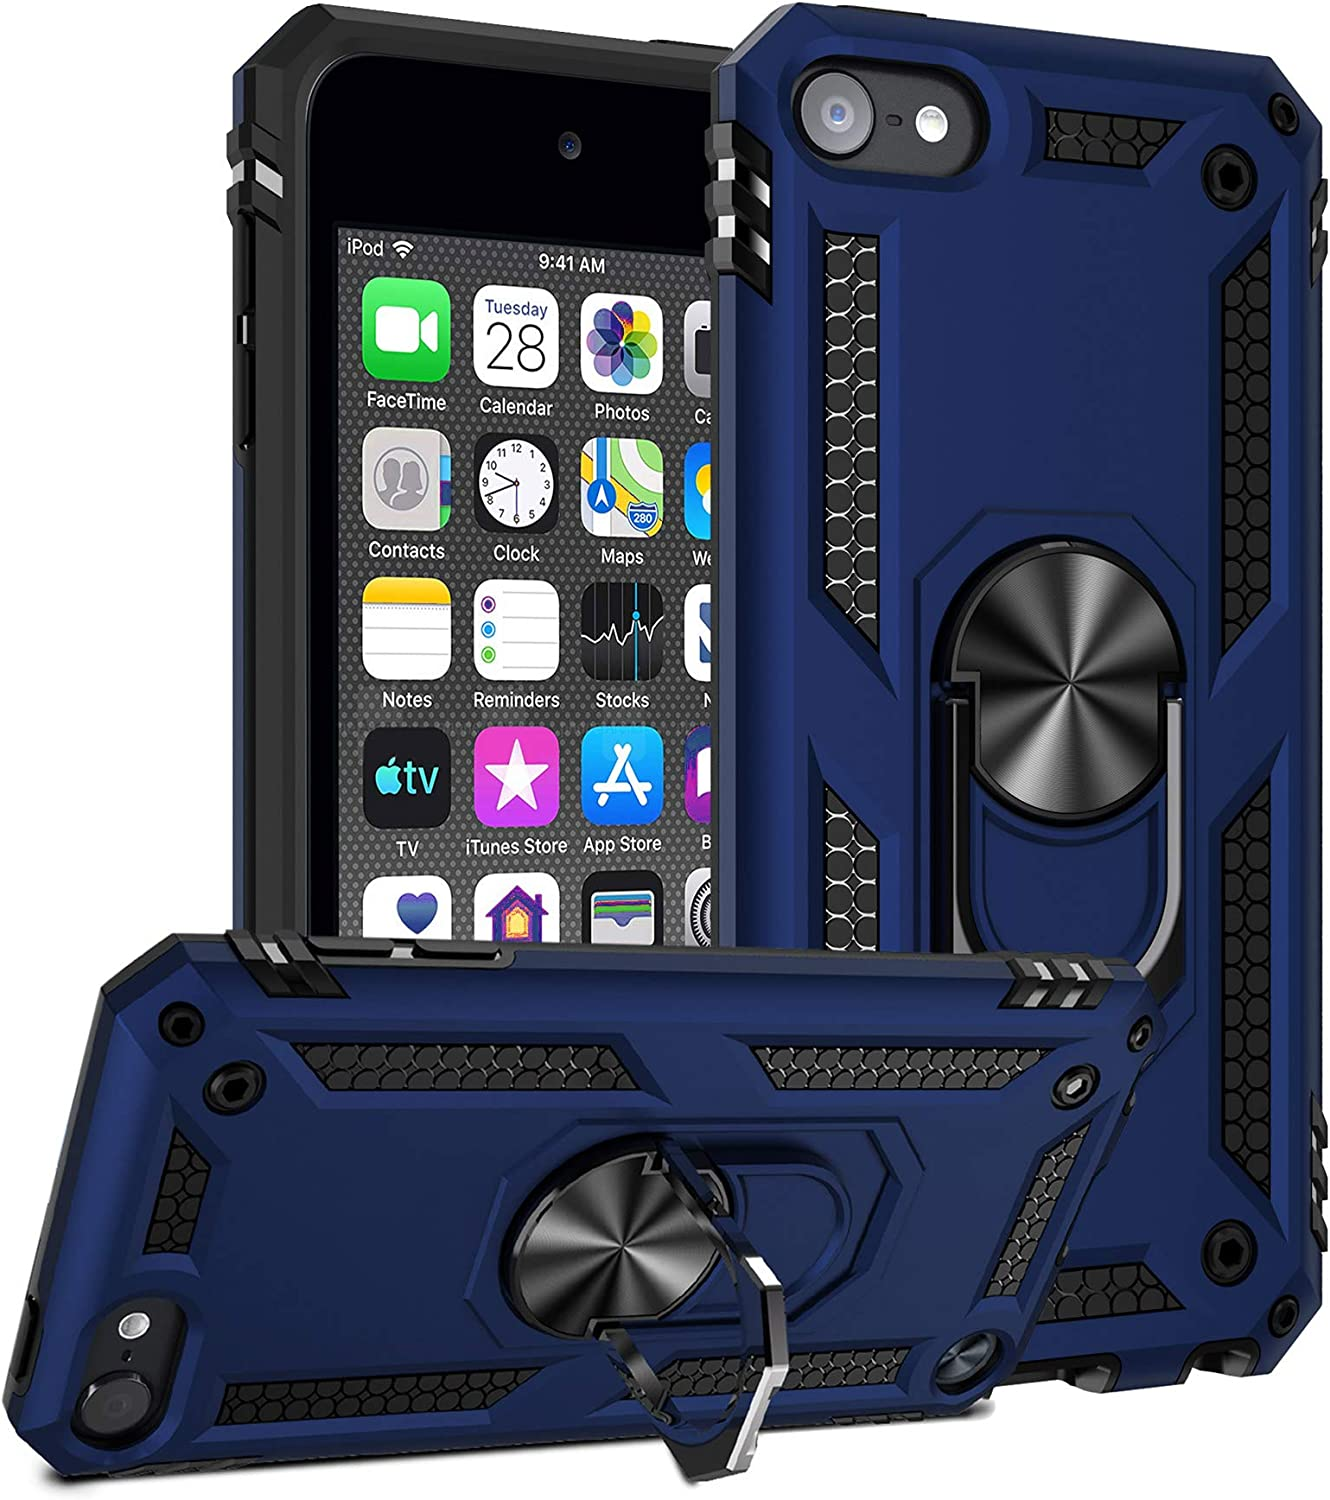 ULAK iPod Touch 7 Case, iPod Touch 6 Case, Hybrid Rugged Shockproof Cover with Built-in Kickstand for Apple iPod Touch 7th/6th/5th Generation (Blue)